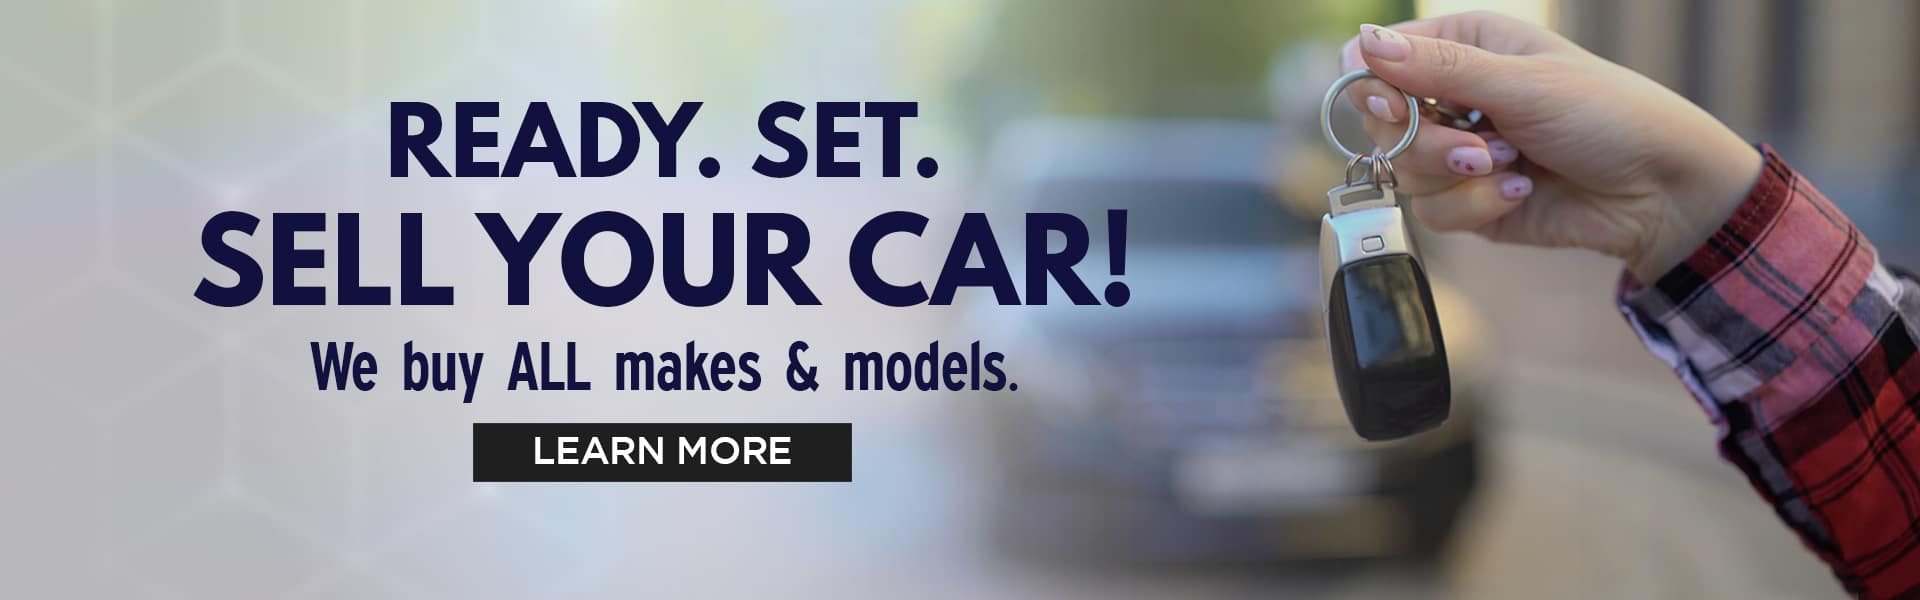 ready set sell your car